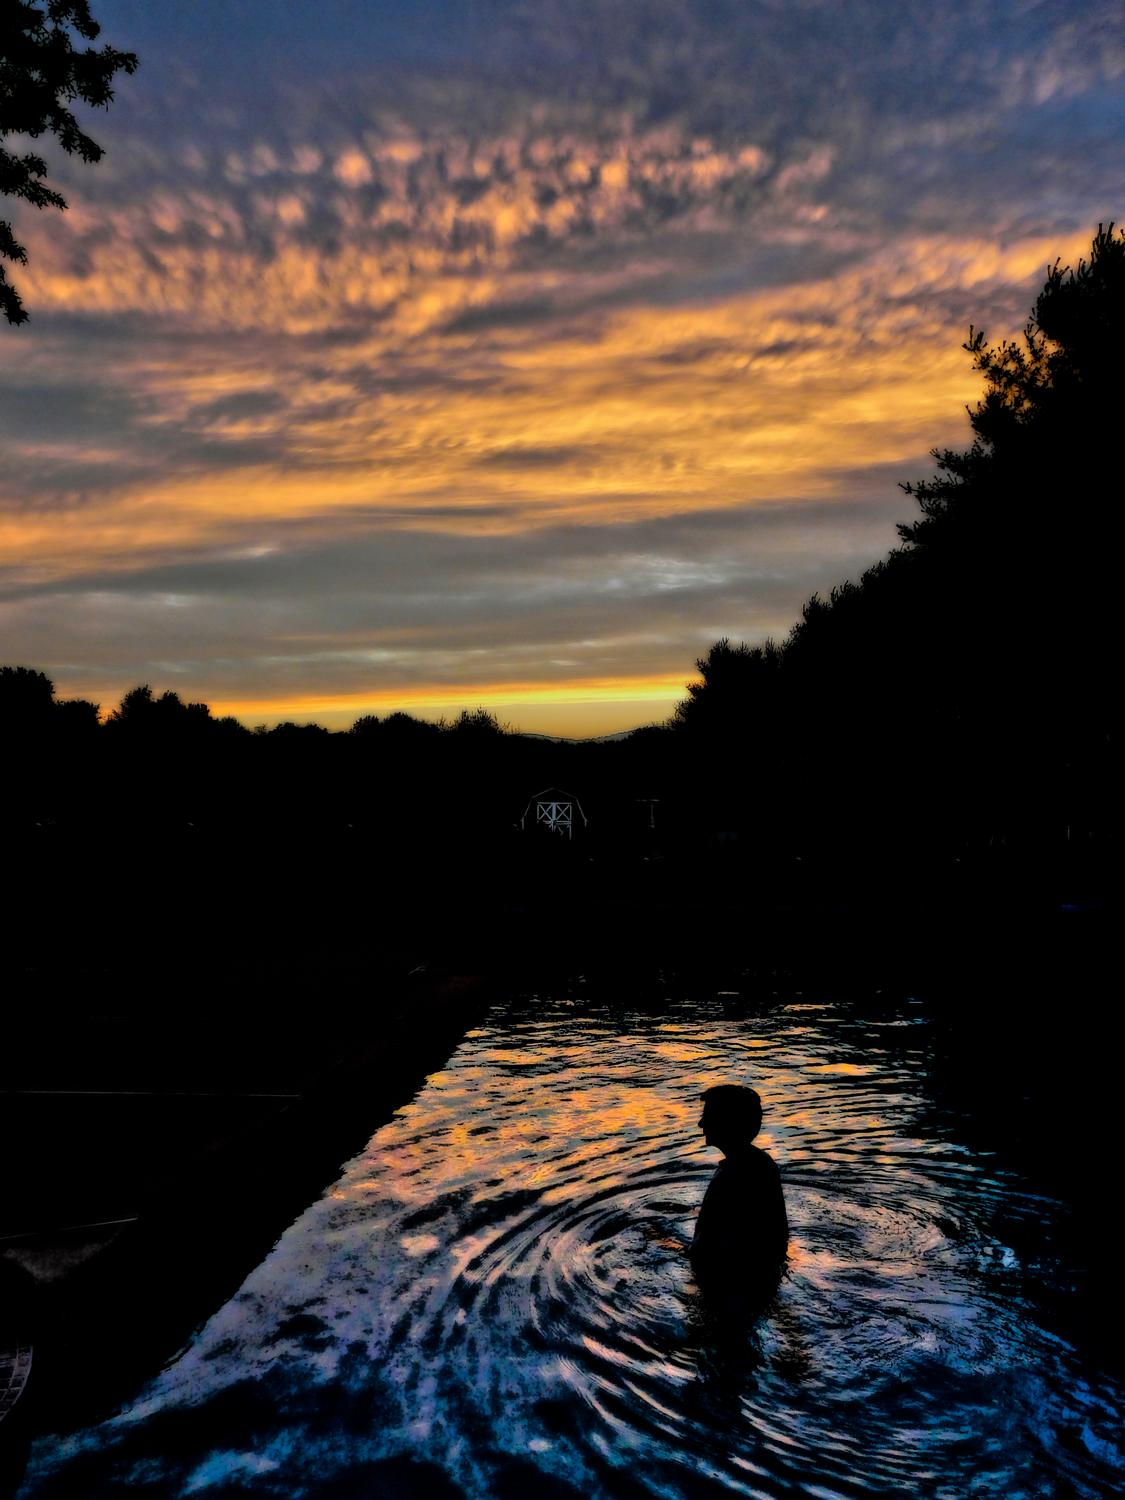 The artist's muse - the Hobbitt - in the pool at sunset #1 - The artist's muse at sunset -- DMC-FZ18 -  Panasonic DMC-FZ18 - Tony Karp, design, art, photography, techno-impressionist, techno-impressionism, aerial photography , drone , drones , dji , mavic pro , video , 3D printing - Books -